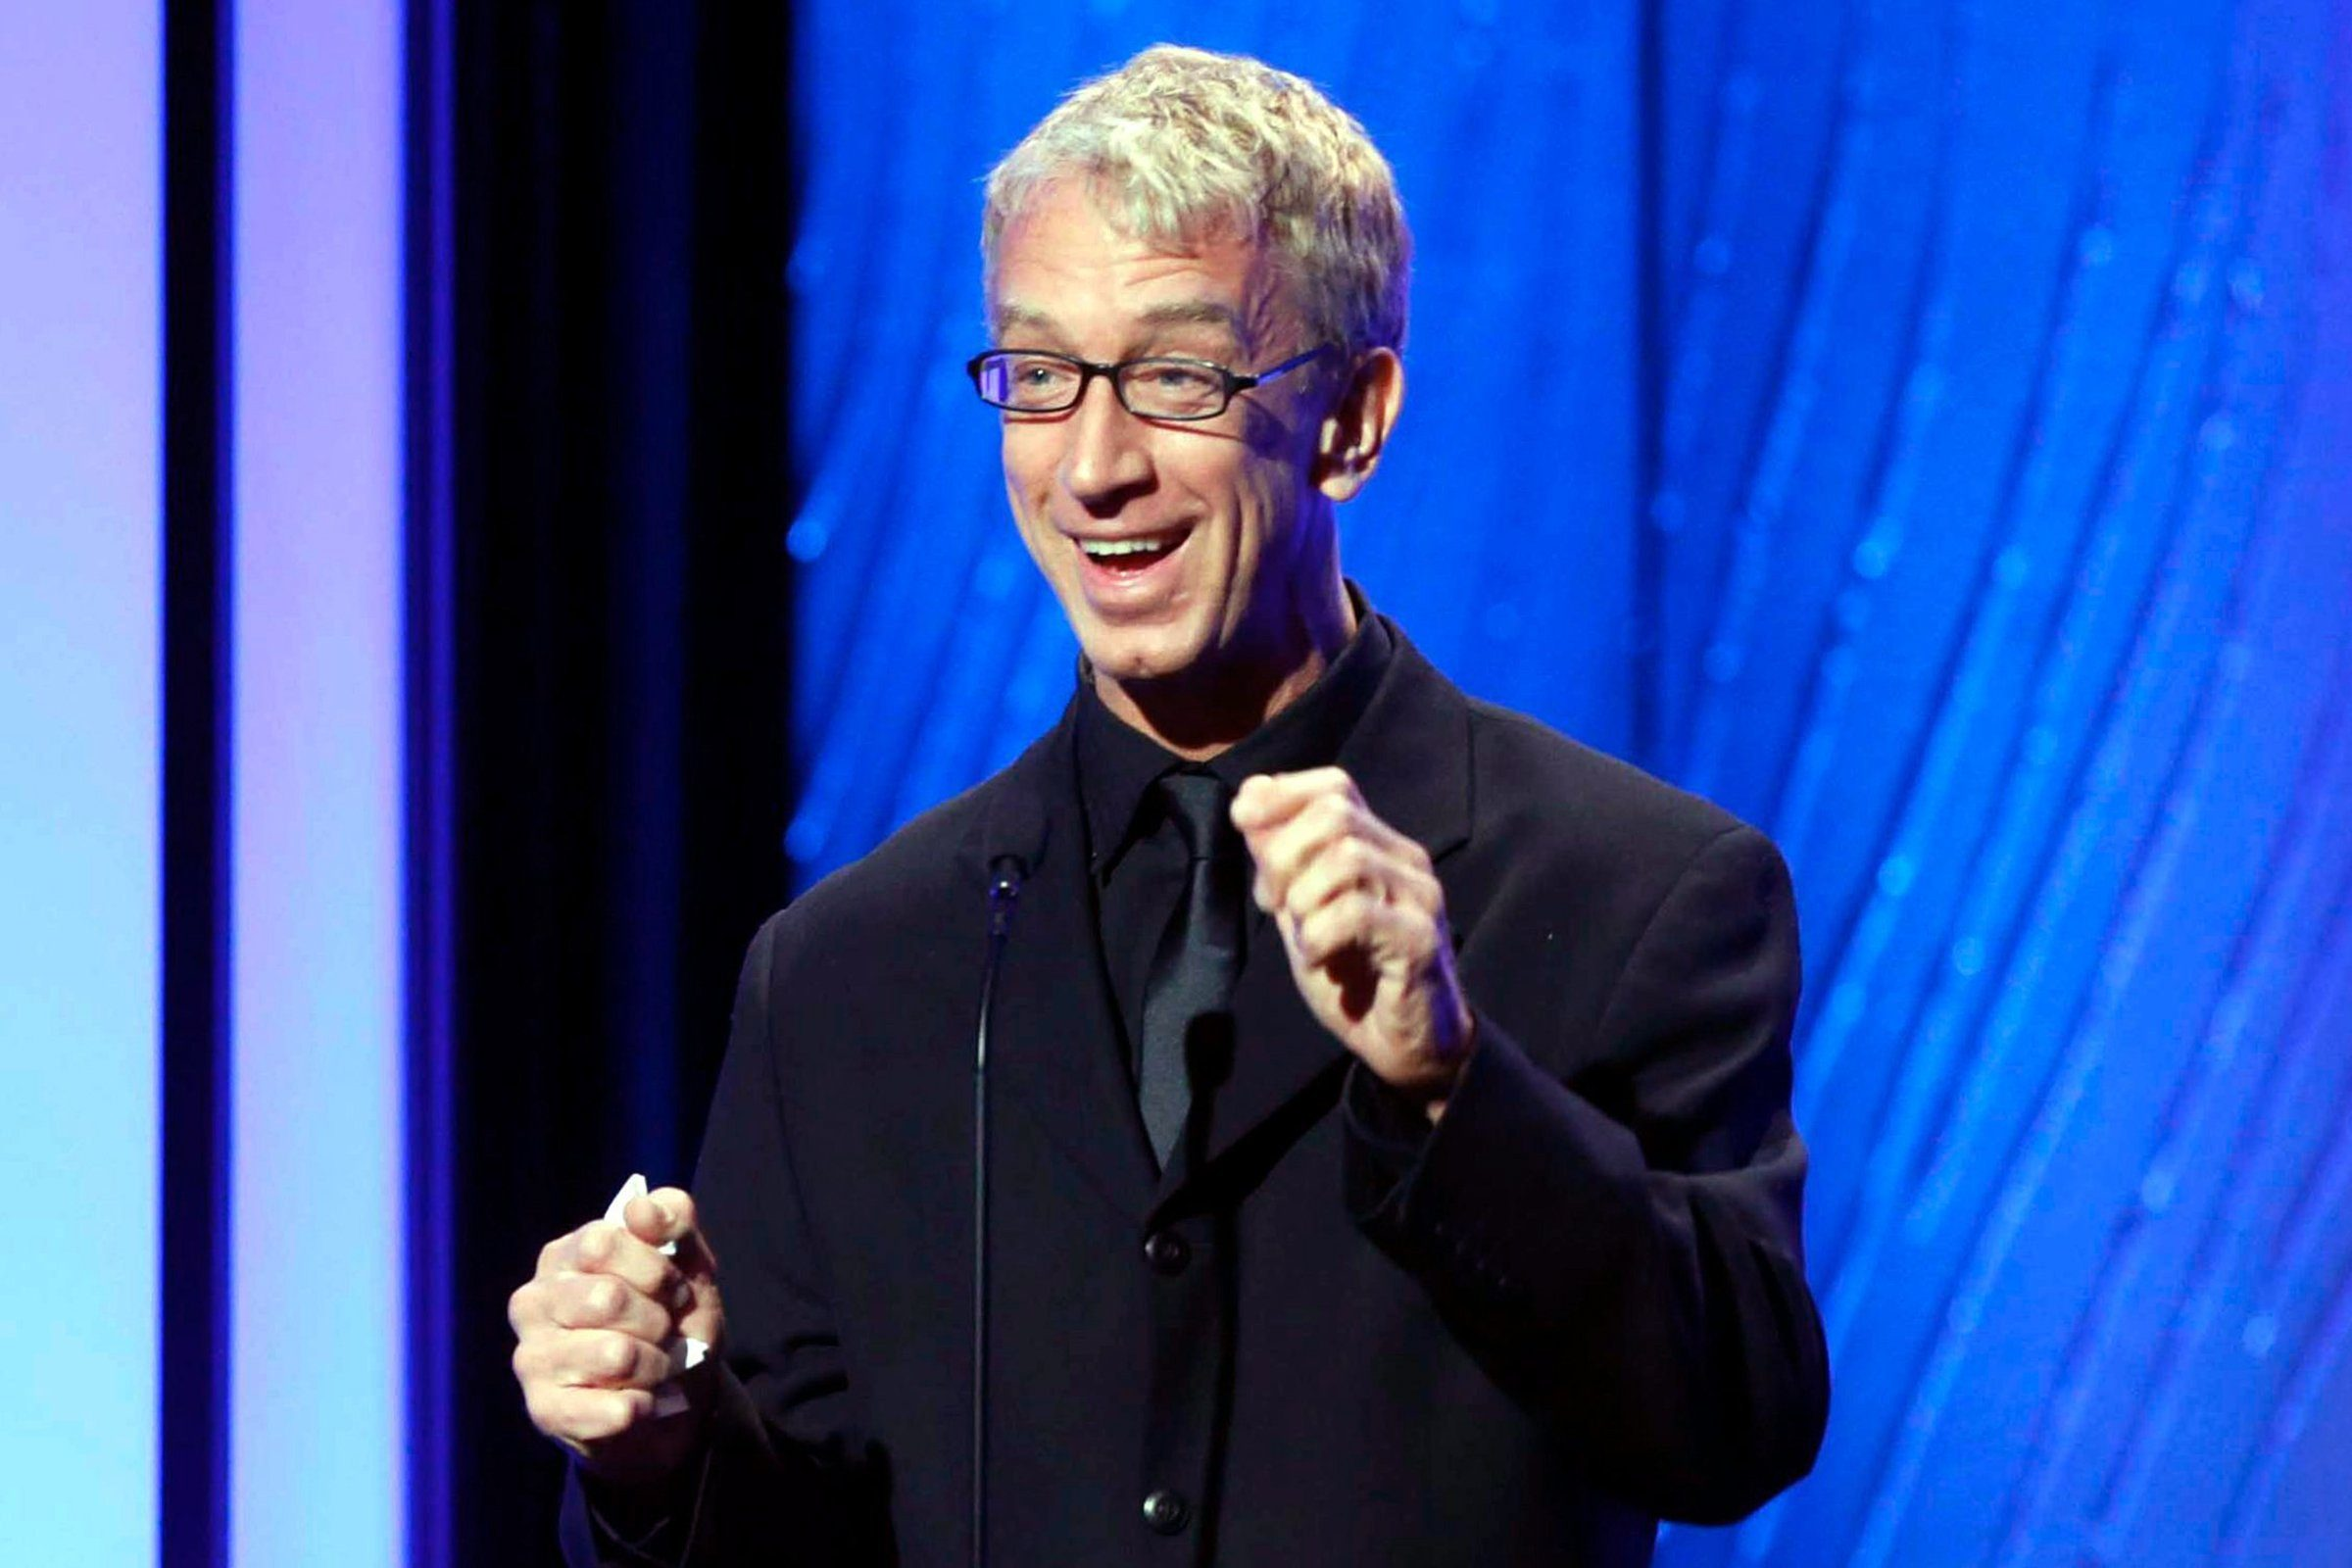 Mandatory Credit: Photo by Todd Williamson/Invision/AP/Shutterstock (9112189a) Comedian Andy Dick speaks onstage during the American Cinematheque 26th Annual Award Presentation to Ben Stiller 2012 in Beverly Hills, Calif. Los Angeles police arrested Dick on suspicion of grand theft late Friday night, Nov. 7, 2014, in Los Angeles' Hollywood district. The celebrity gossip website TMZ.com, which first reported the arrest, said Dick allegedly stole the necklace of a man he encountered on Hollywood Boulevard last week Andy Dick-Arrest, Beverly Hills, USA